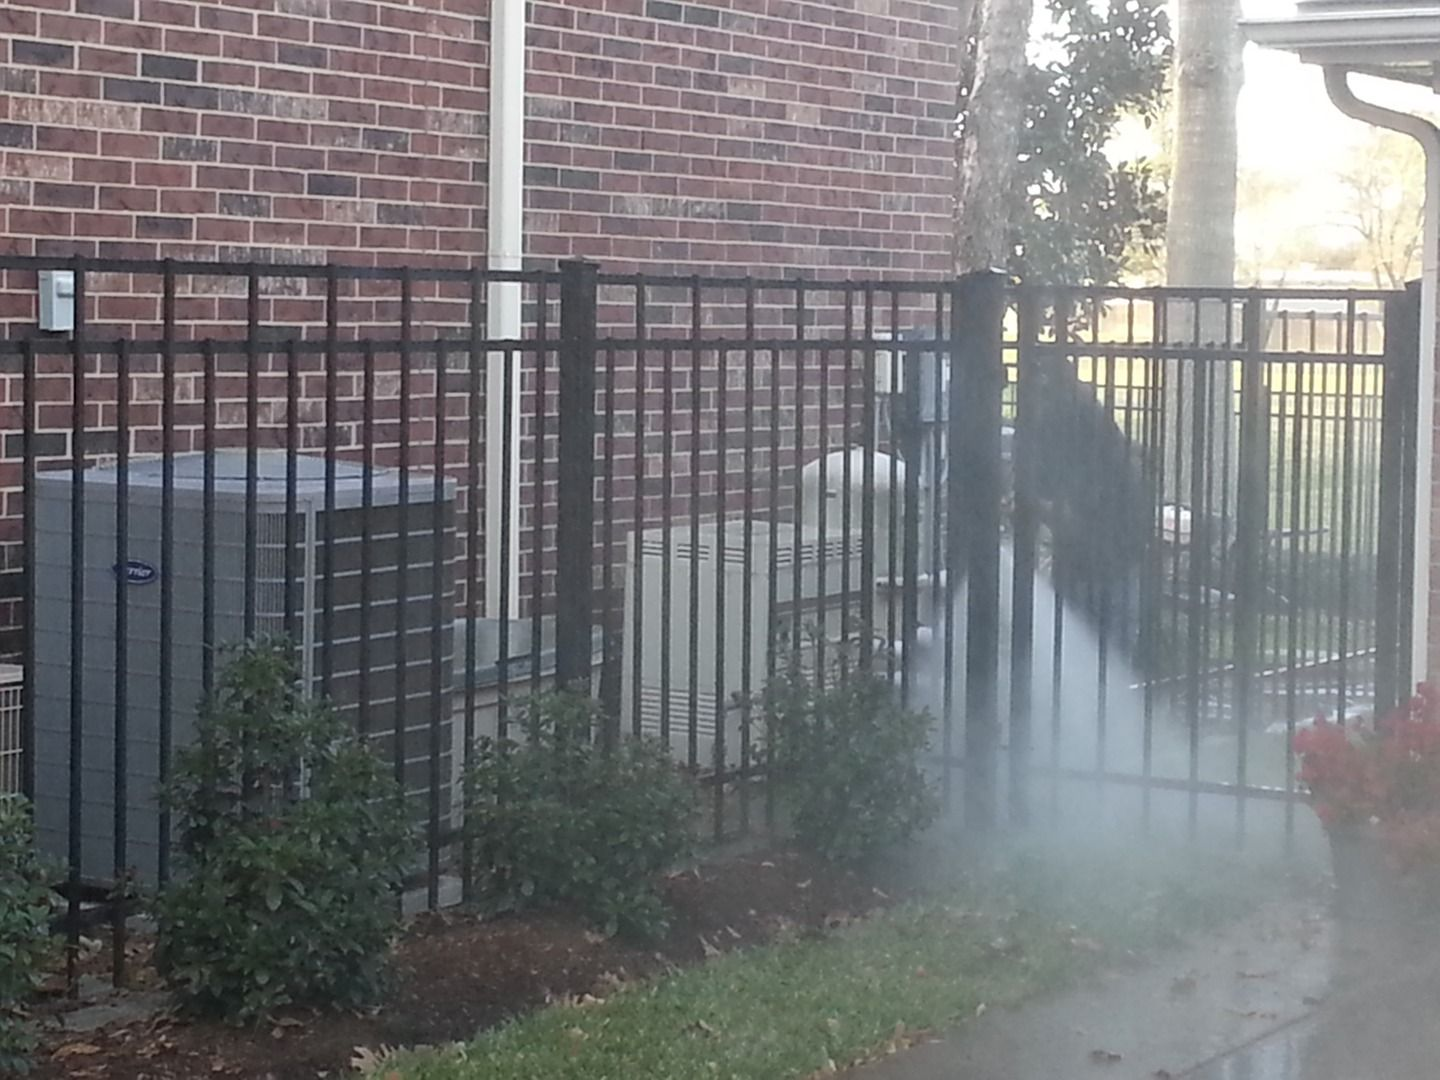 Katy Fence Repair Fence And Gate Repairs Katy Tx 281 271 8583 Fence Fence Styles Repair